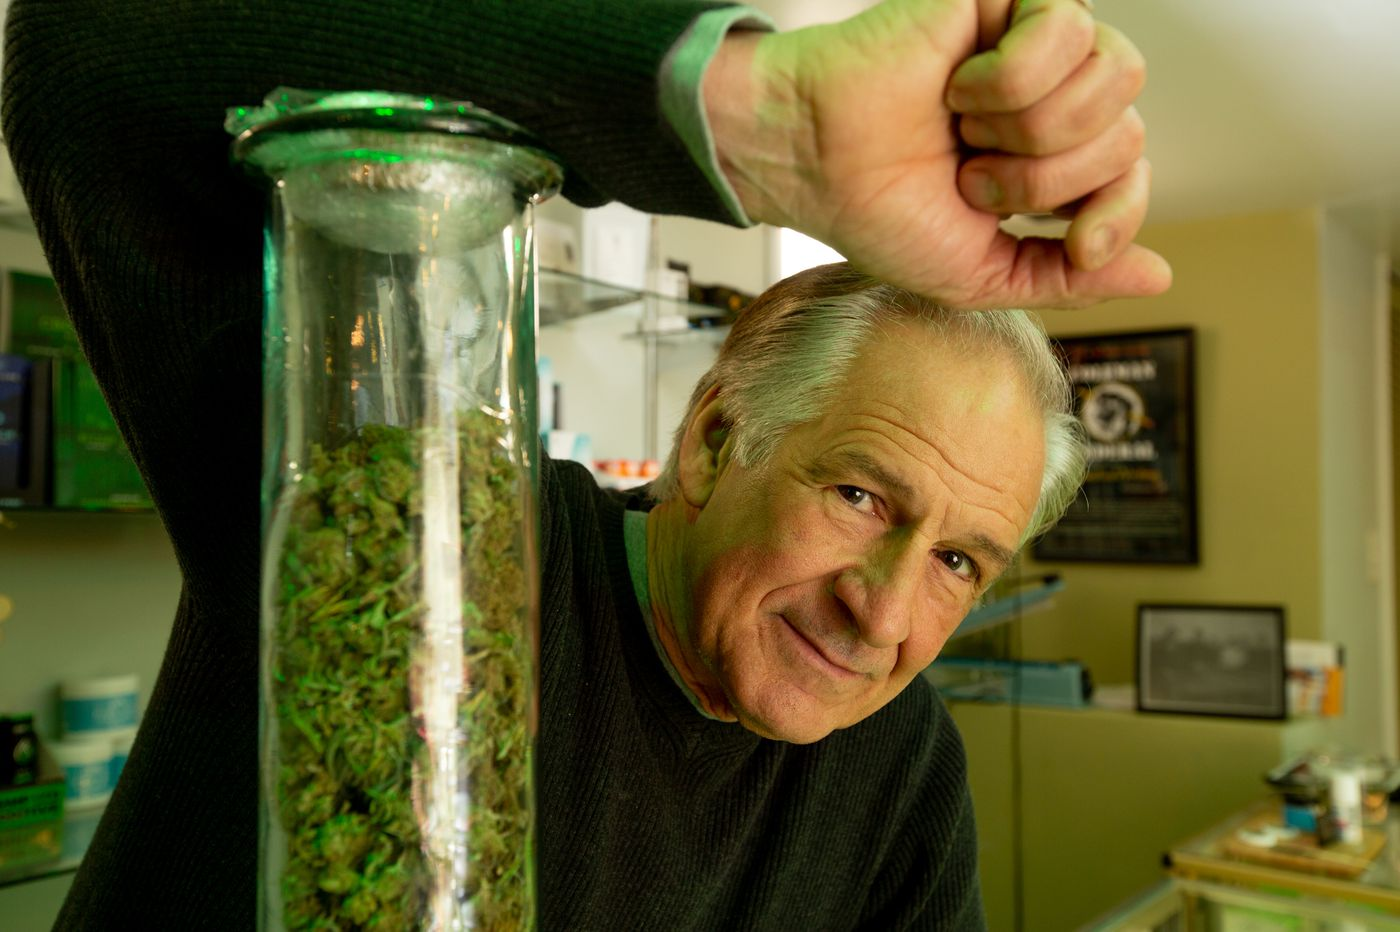 This Philly hustler, once called a 'drug kingpin' and spent 30 years in prison, now owns a CBD cafe